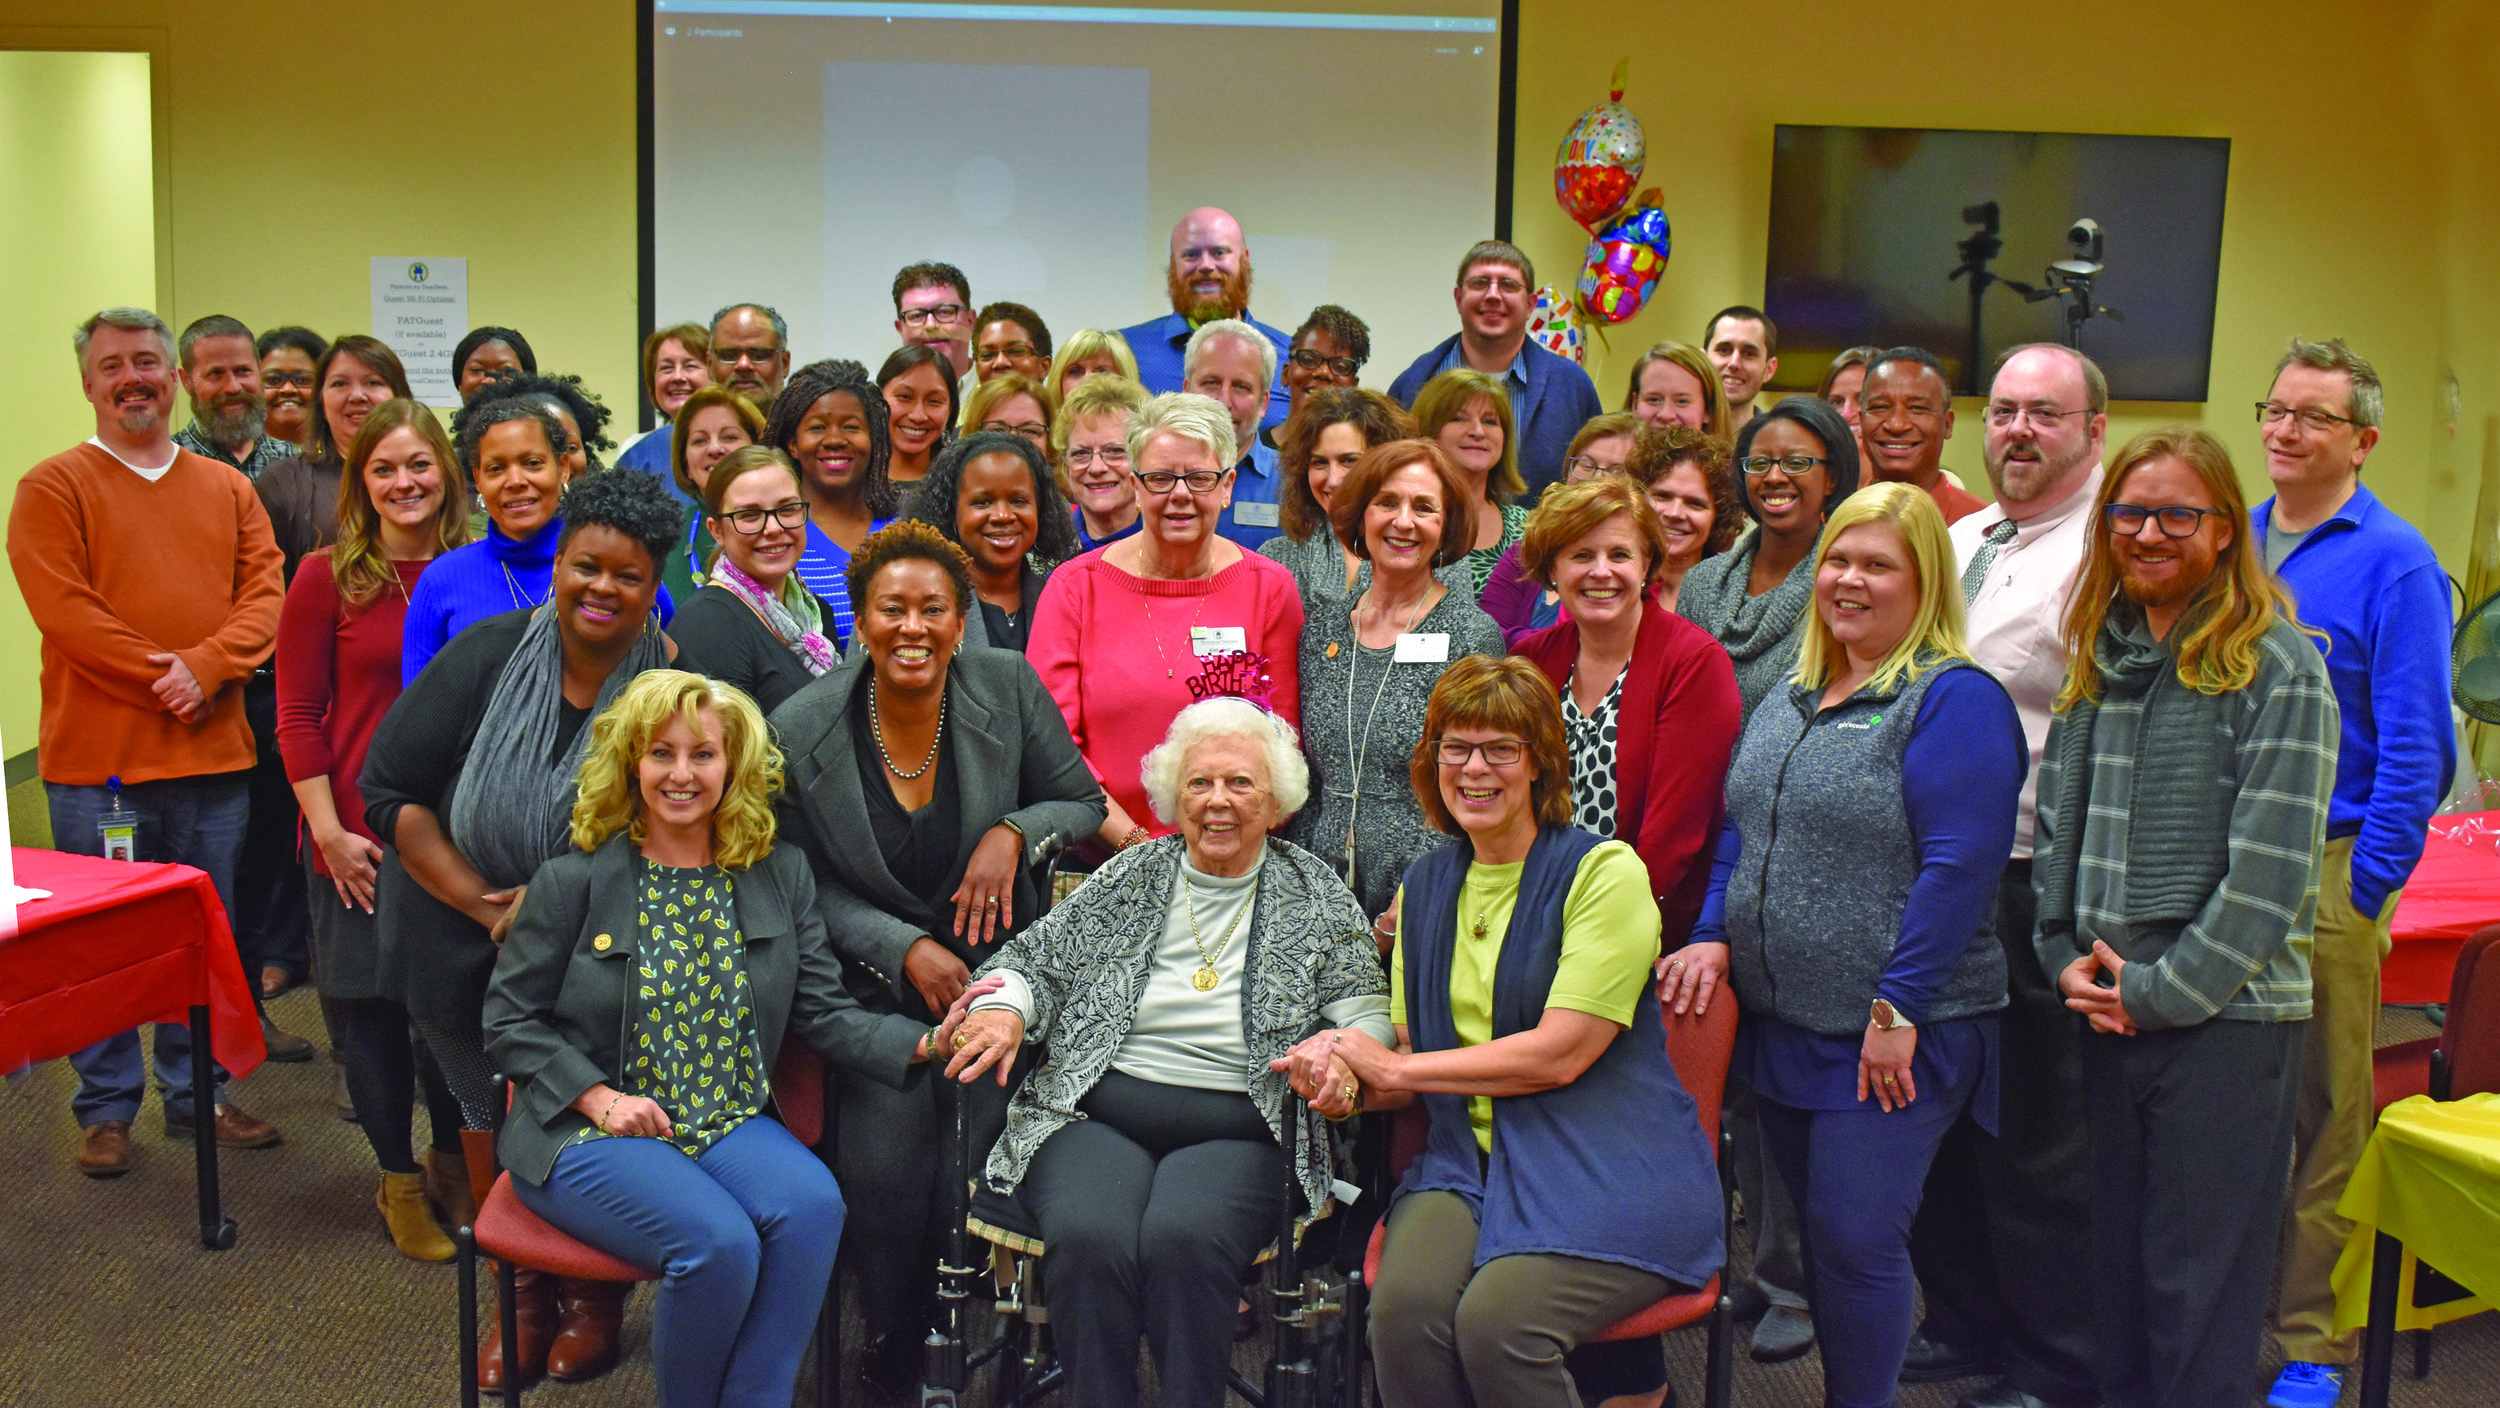 Parent educators and staff at the Parents as Teachers National Center in St. Louis, MO pose with Parents as Teachers Founder Mildred Winter (seated center) and Constance Gully, the organization's president and CEO, (left) during Winter's 98th birthday celebration. The day was also recognized as National Parents as Teachers Day and the kick-off to Parents as Teachers 35th-anniversary activities.